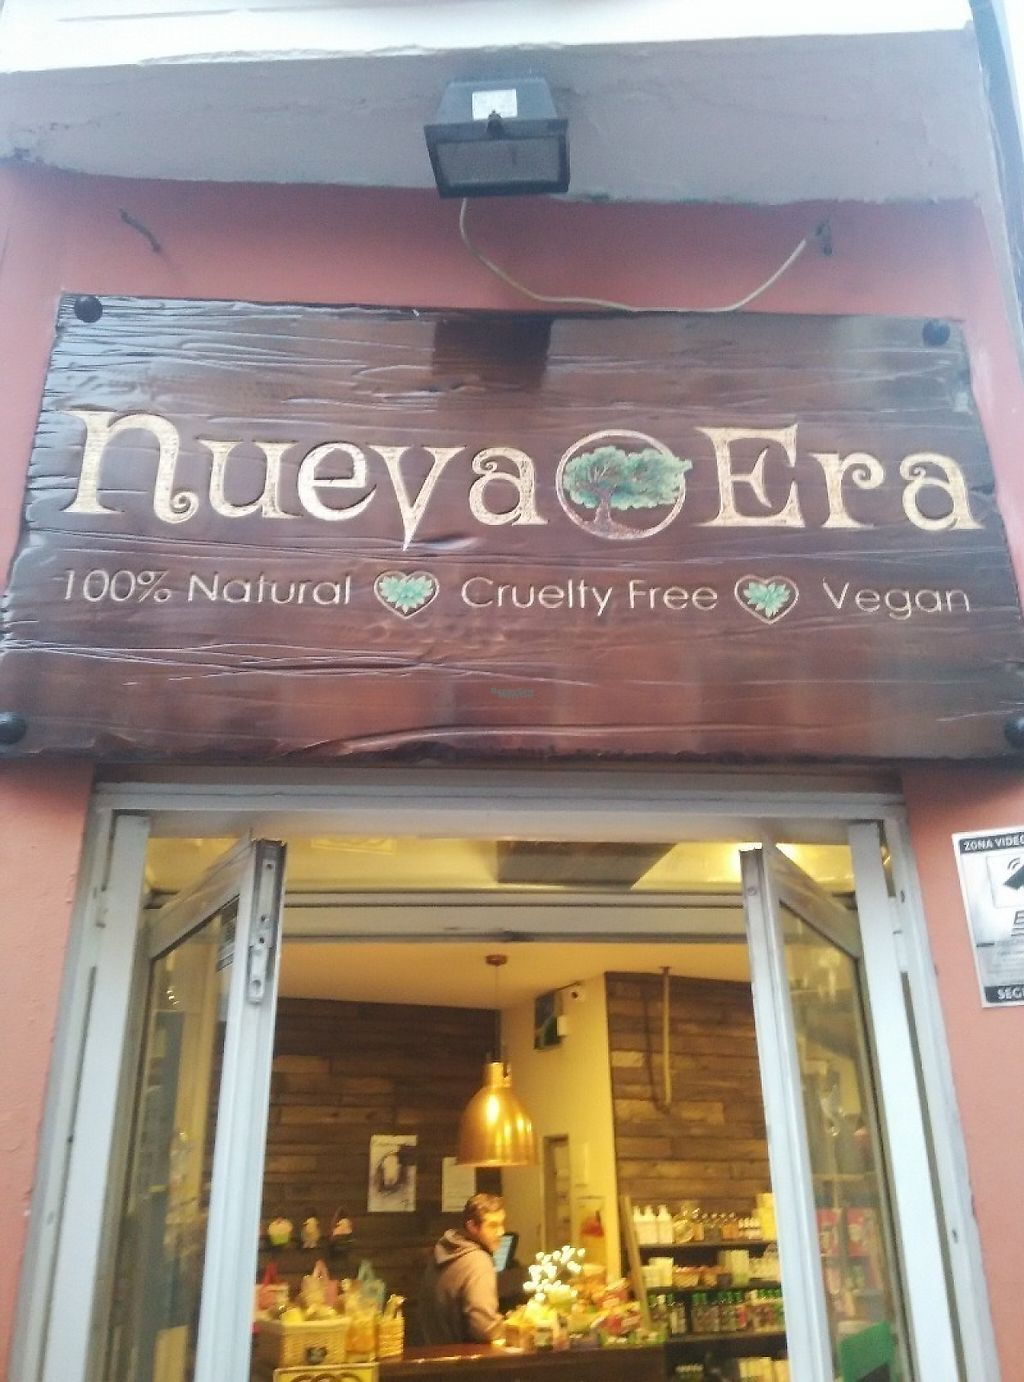 """Photo of Nueva Era  by <a href=""""/members/profile/NuevaEra"""">NuevaEra</a> <br/>Nueva Era 100% vegan <br/> January 16, 2017  - <a href='/contact/abuse/image/85277/212364'>Report</a>"""